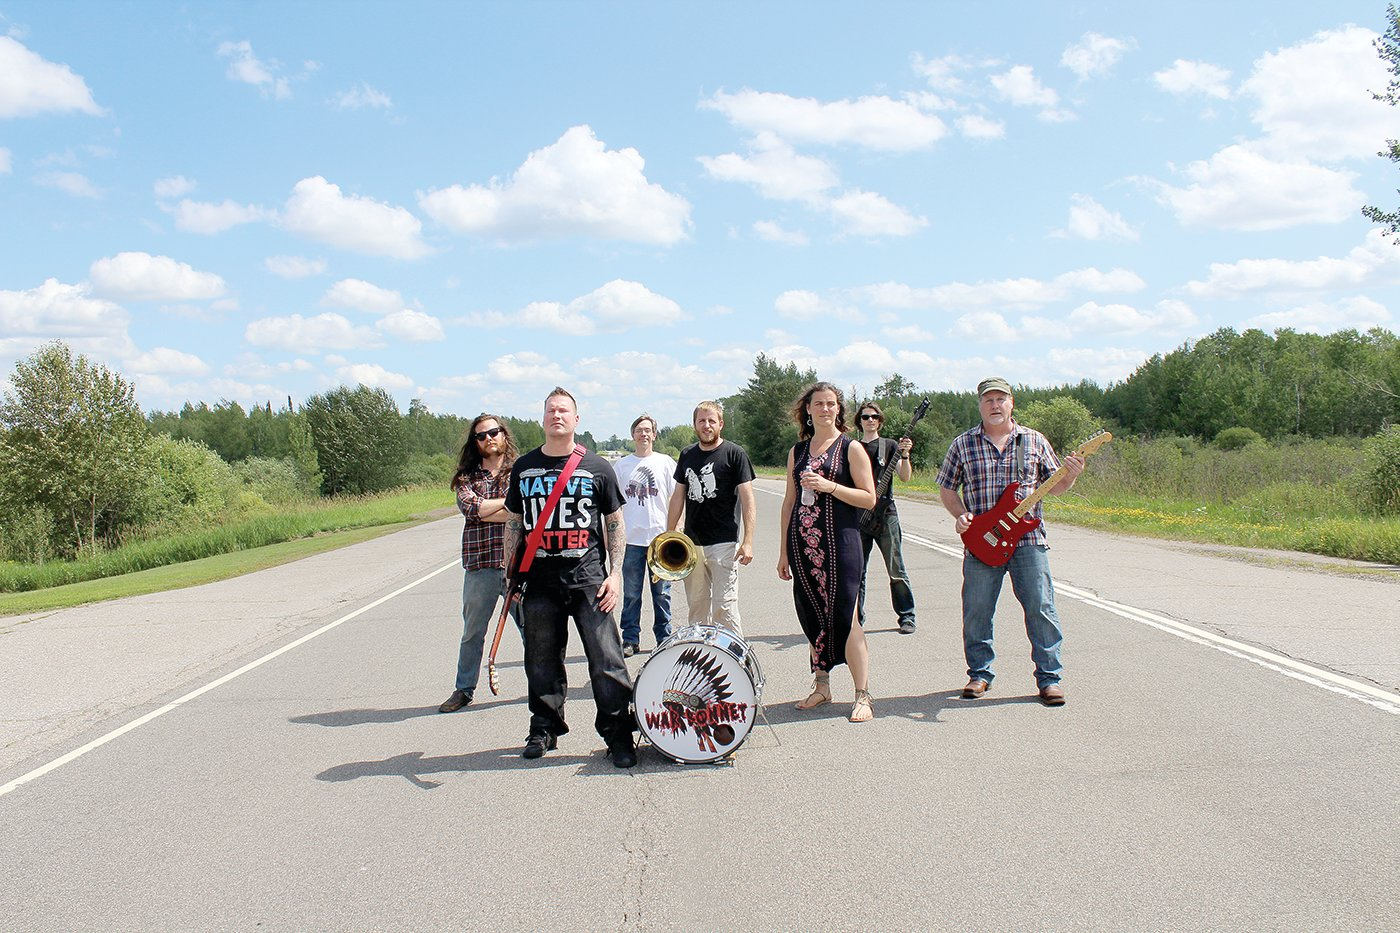 War Bonnet and their performance ensemble will be performing at Wild Waters Music Fest to Save the Boundary Waters on Friday, Aug. 16 at Bayfront Festival Park in Duluth. Left to right are: Tom Frichek, Chaz Wagner, Tony Parson, Alex Mahne, Becky Frichek, Sean Zarn and Eric Krenz.